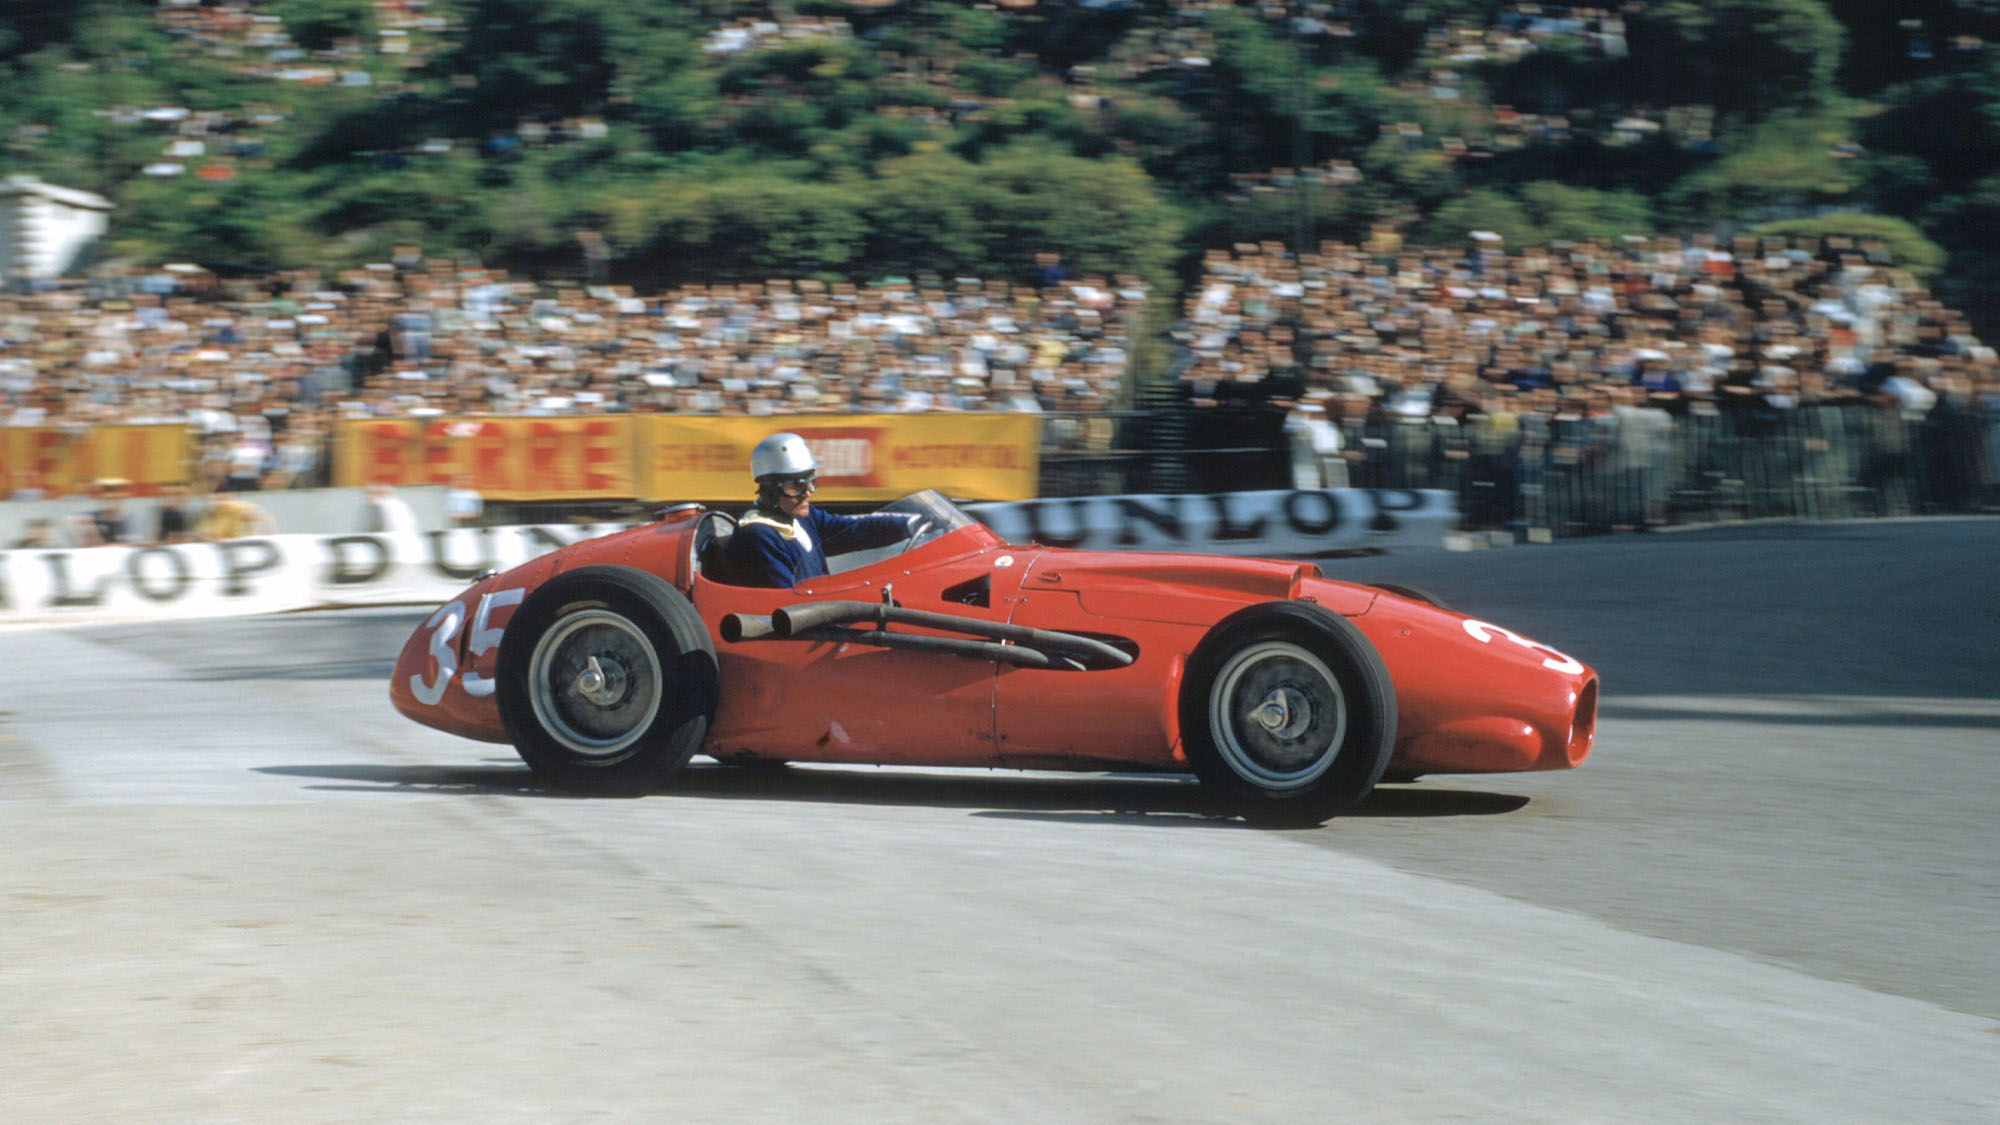 The Monaco Grand Prix; Monte Carlo, May 19, 1957. Harry Schell during practice with the Maserati 250F-T2 with its V-12 engine. Neither he nor Juan Manuel Fangio like the car on the tight Monte Carlo circuit. (Photo by Klemantaski Collection/Getty Images)